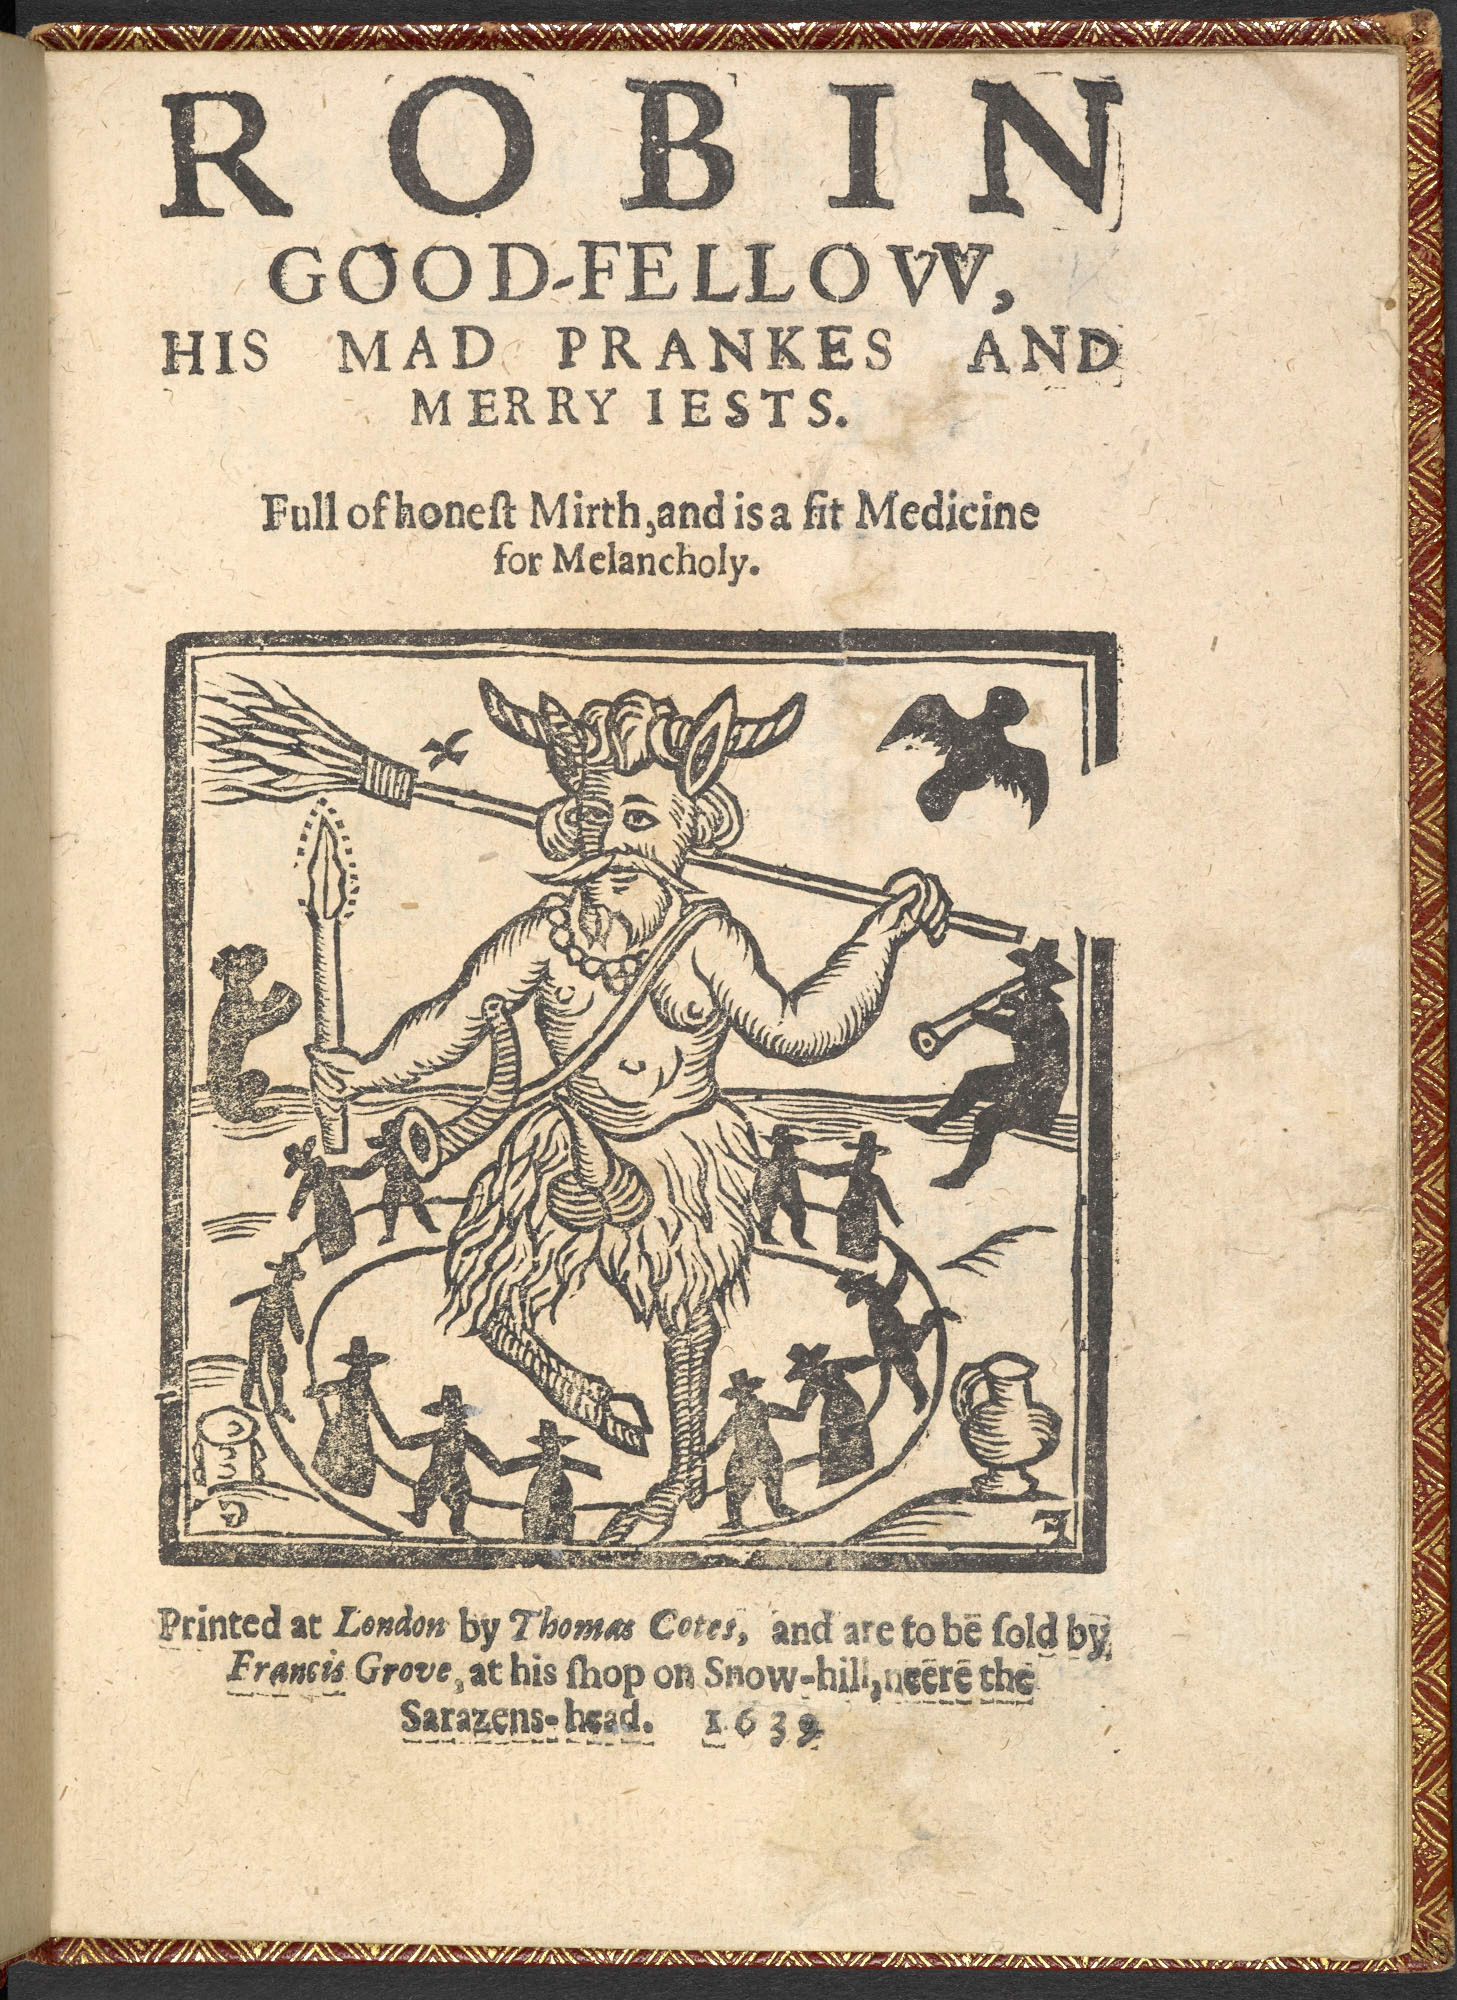 Robin Goodfellow, His Mad Pranks and Merry Jests, 1639